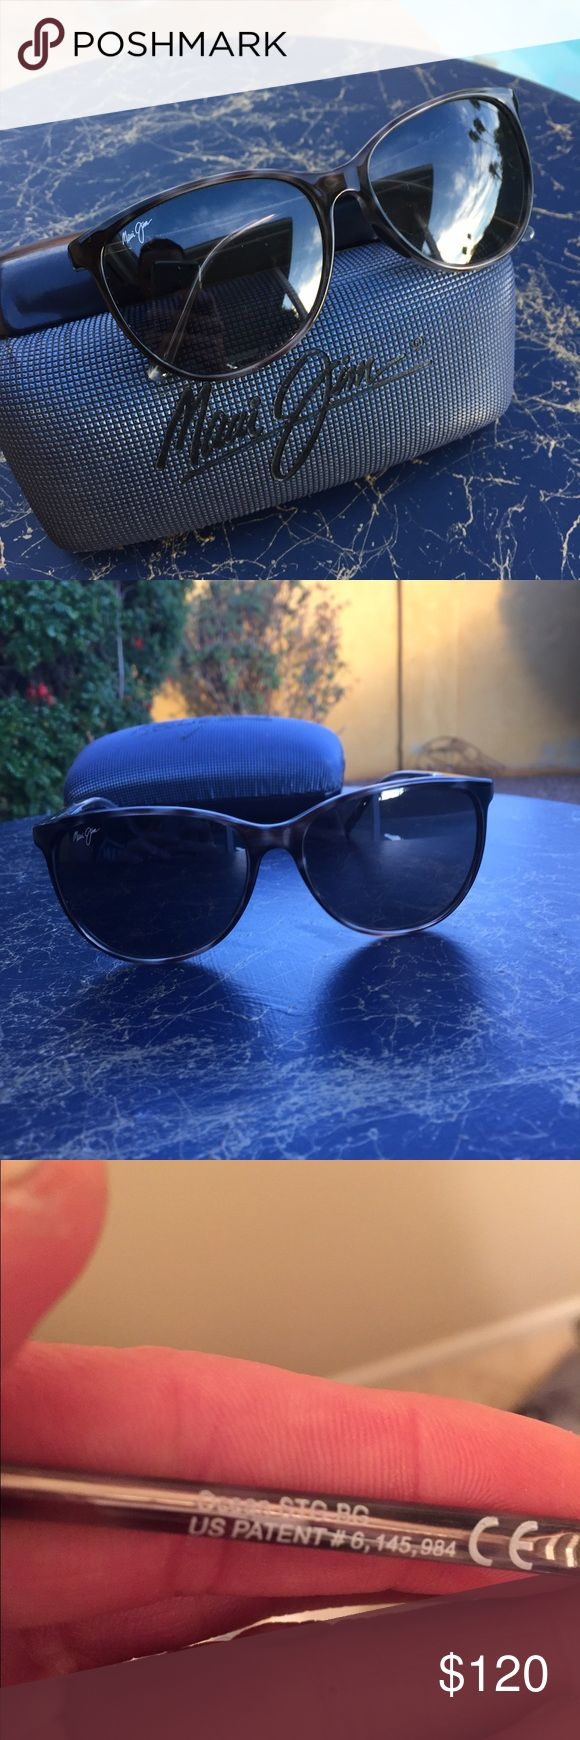 Maui Jim ocean sunglasses New Maui Jim MJ 723 ocean women's sunglasses. Polarized lenses with gray tortoise frames. Perfect condition. Maui Jim case included Maui Jim Accessories Sunglasses